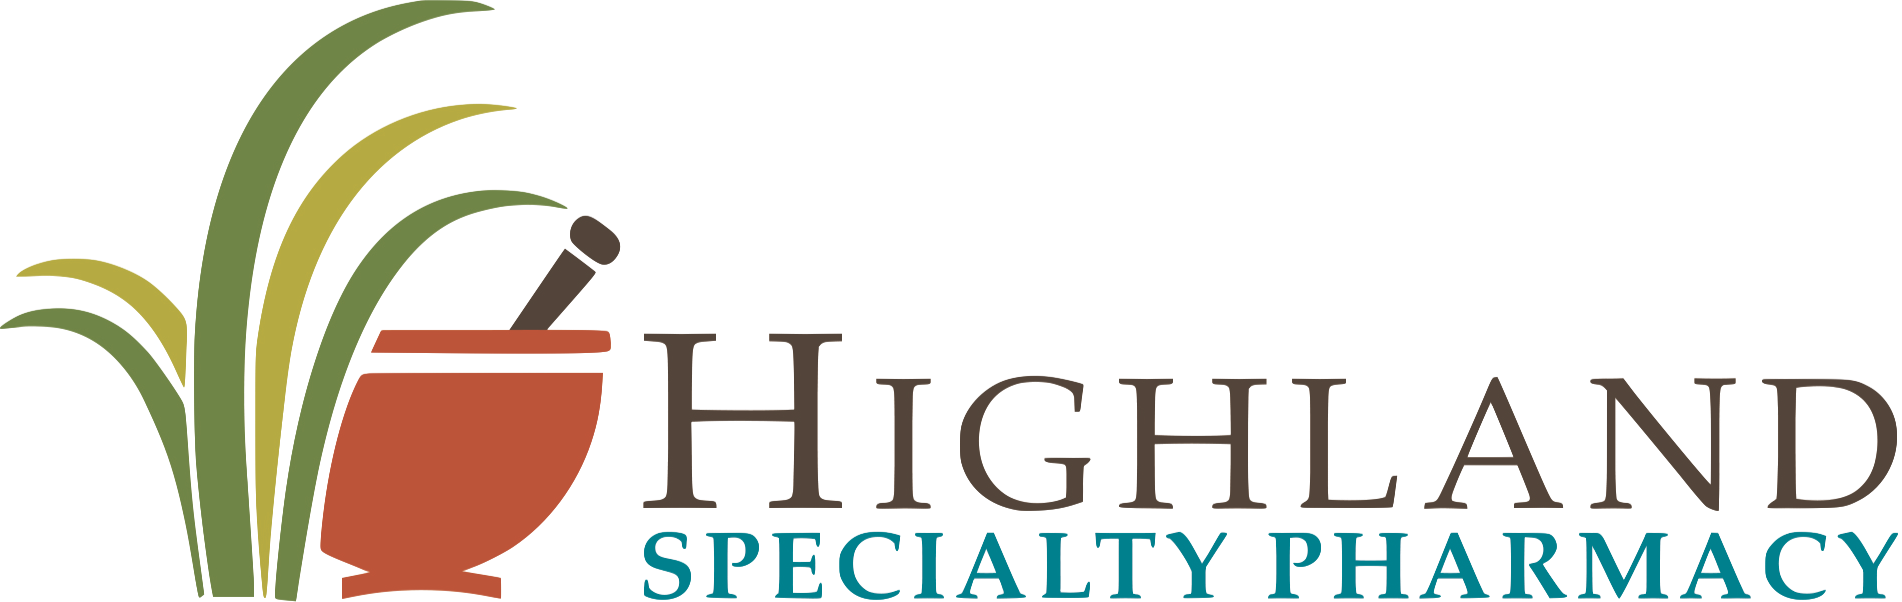 Highland Specialty Pharmacy